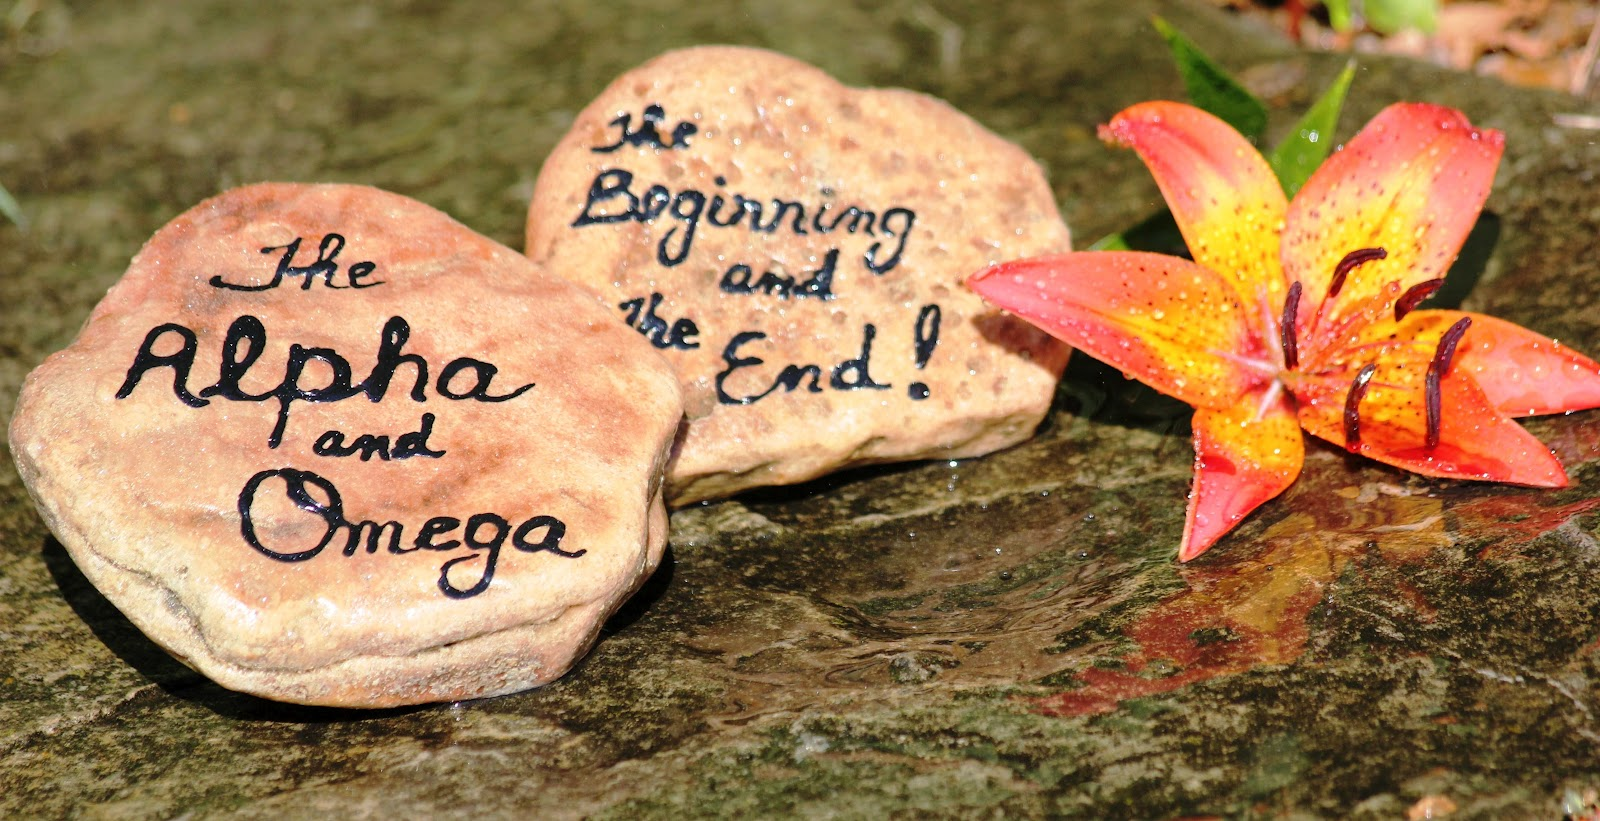 alpha and omega, having faith in god, how not to worry, should a christian worry, Isaiah 46:10, God knows the end from the beginning, declaring the end from the beginning, dealing with worry, turn your eyes upon jesus, omnipresent god